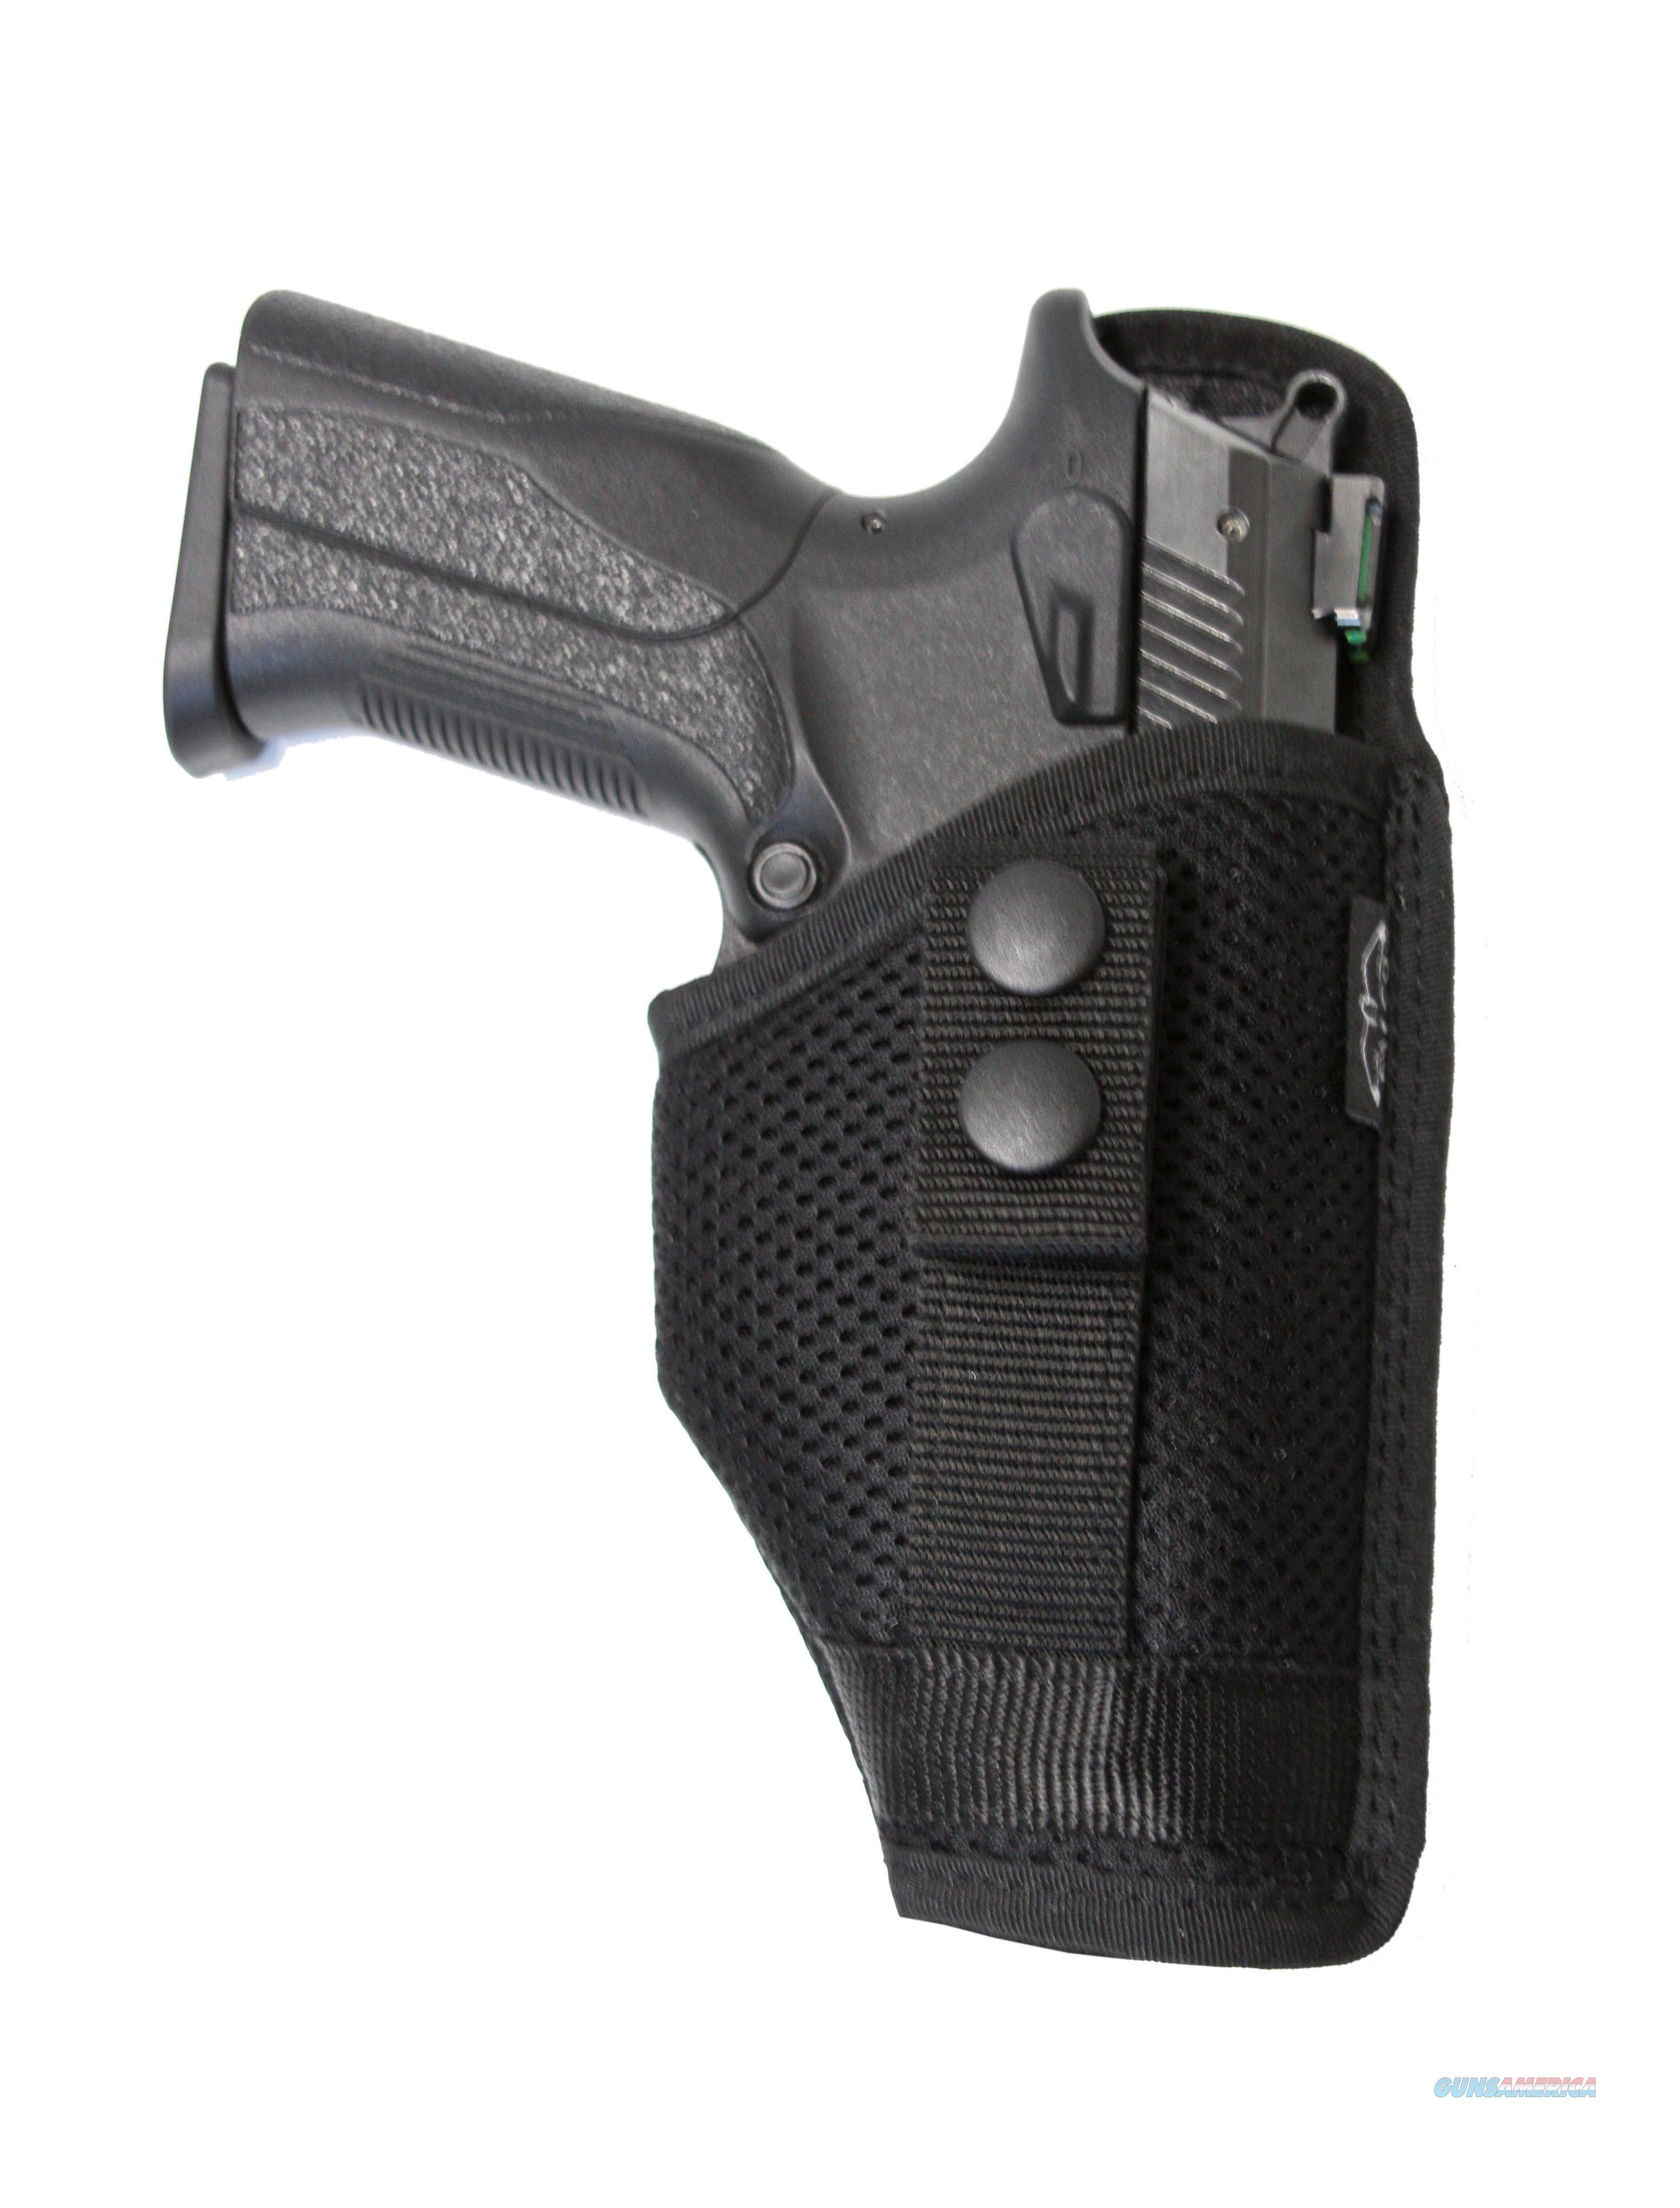 IWB Tuckable Holster for Concealed Gun Carry  Heckler & Koch P30  Non-Guns > Holsters and Gunleather > Concealed Carry